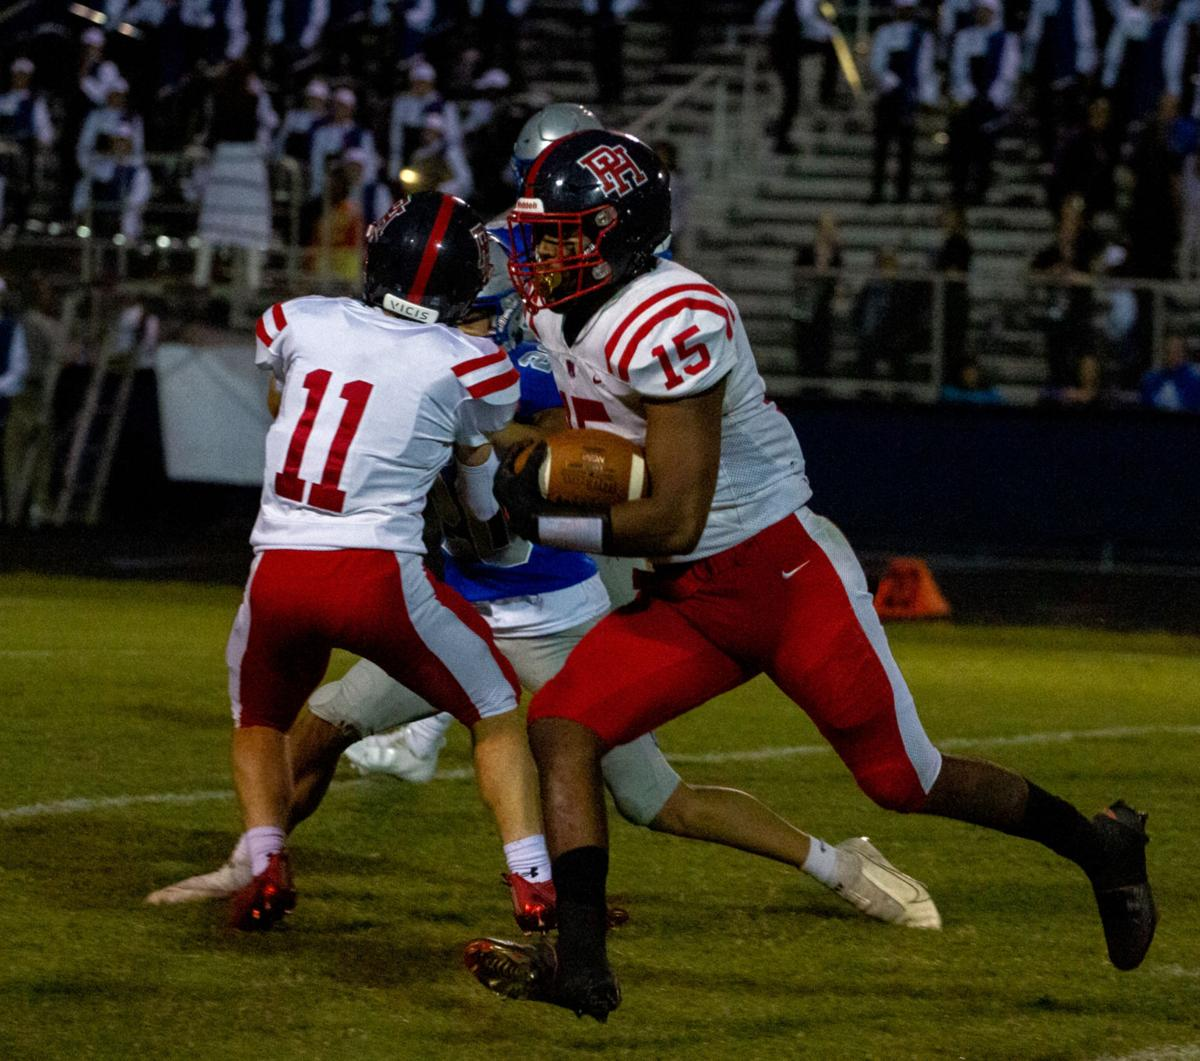 Patrick Henry at Atlee football: Berry gets a block